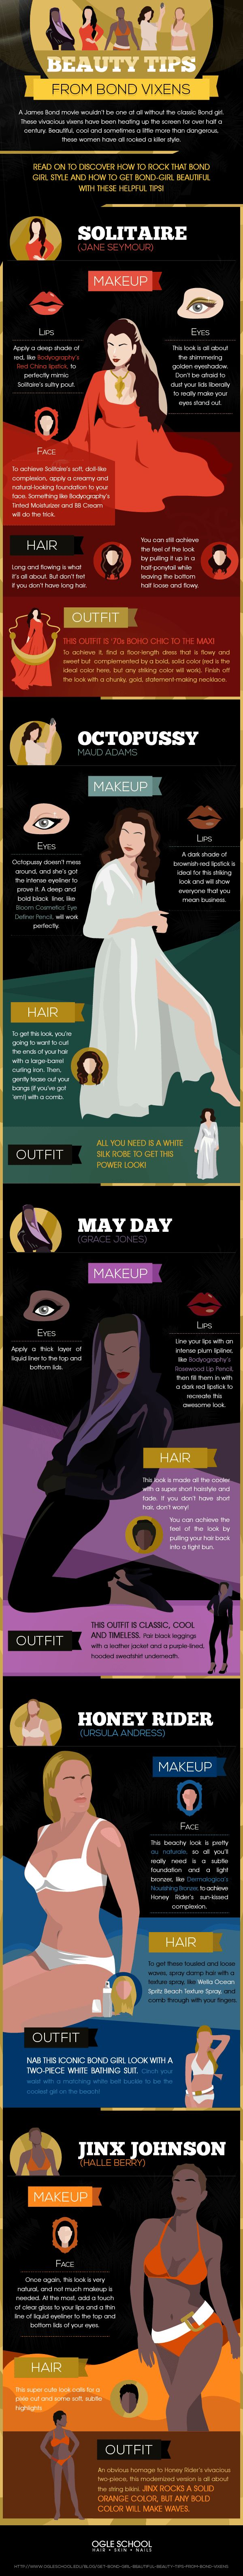 Get Bond Girl Beautiful Beauty Tips from Bond Vixens  [by Ogle School -- via #tipsographic]. More at tipsographic.com